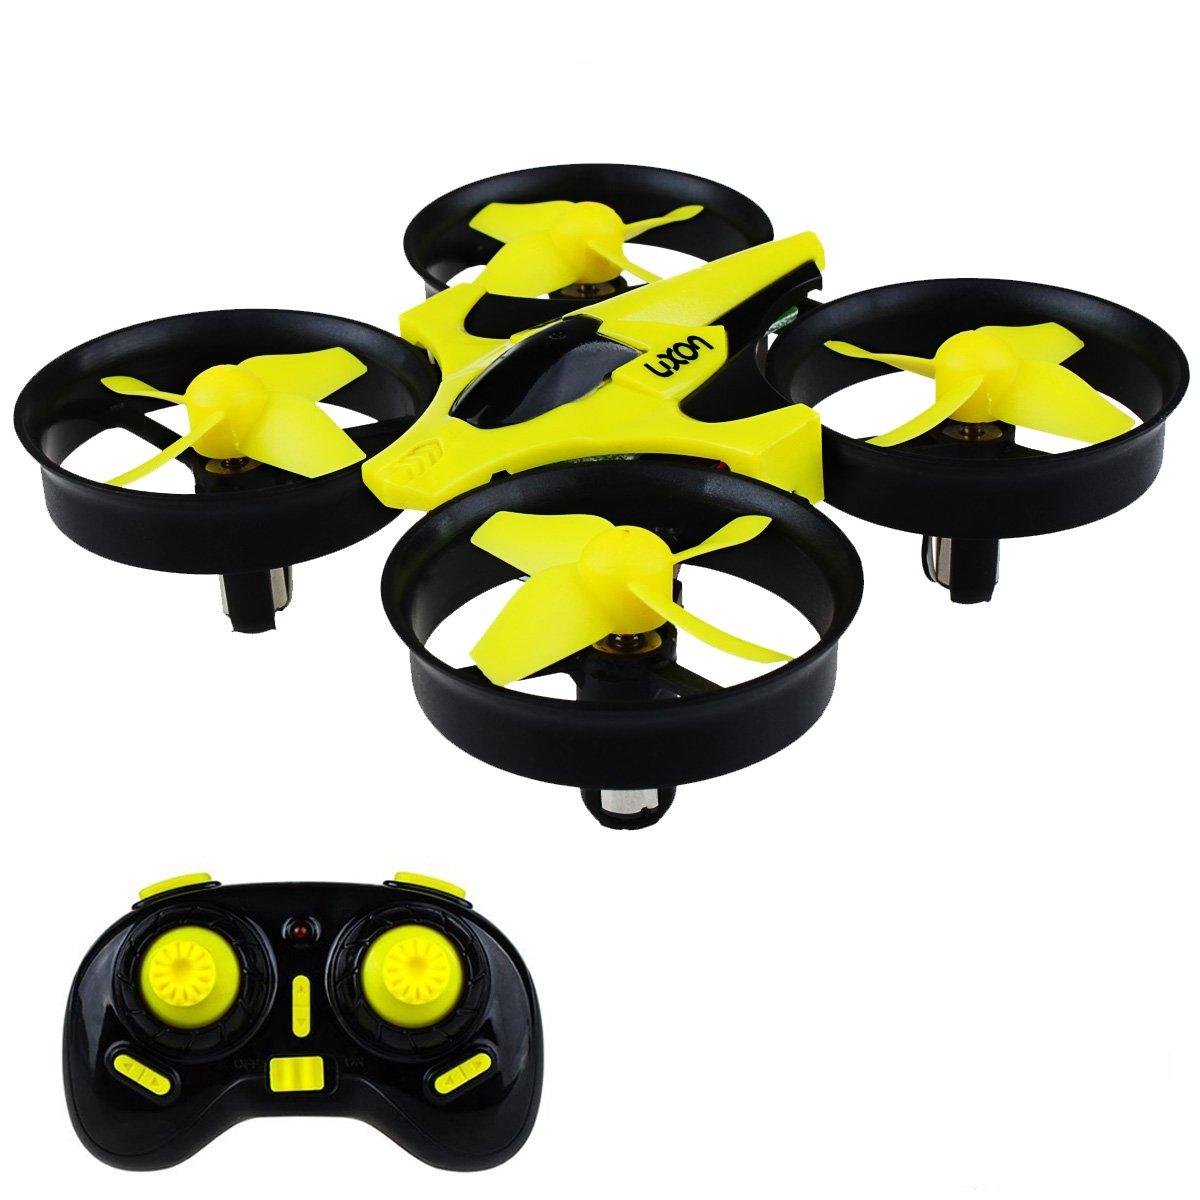 Mini Drone Headless RC Quadcopter Drone for Kids 2.4GHz 4CH 6 Axis Remote Control Helicopter Indoor/Outdoor Flying Small Airplane with One Key Return for Beginner (Yellow)